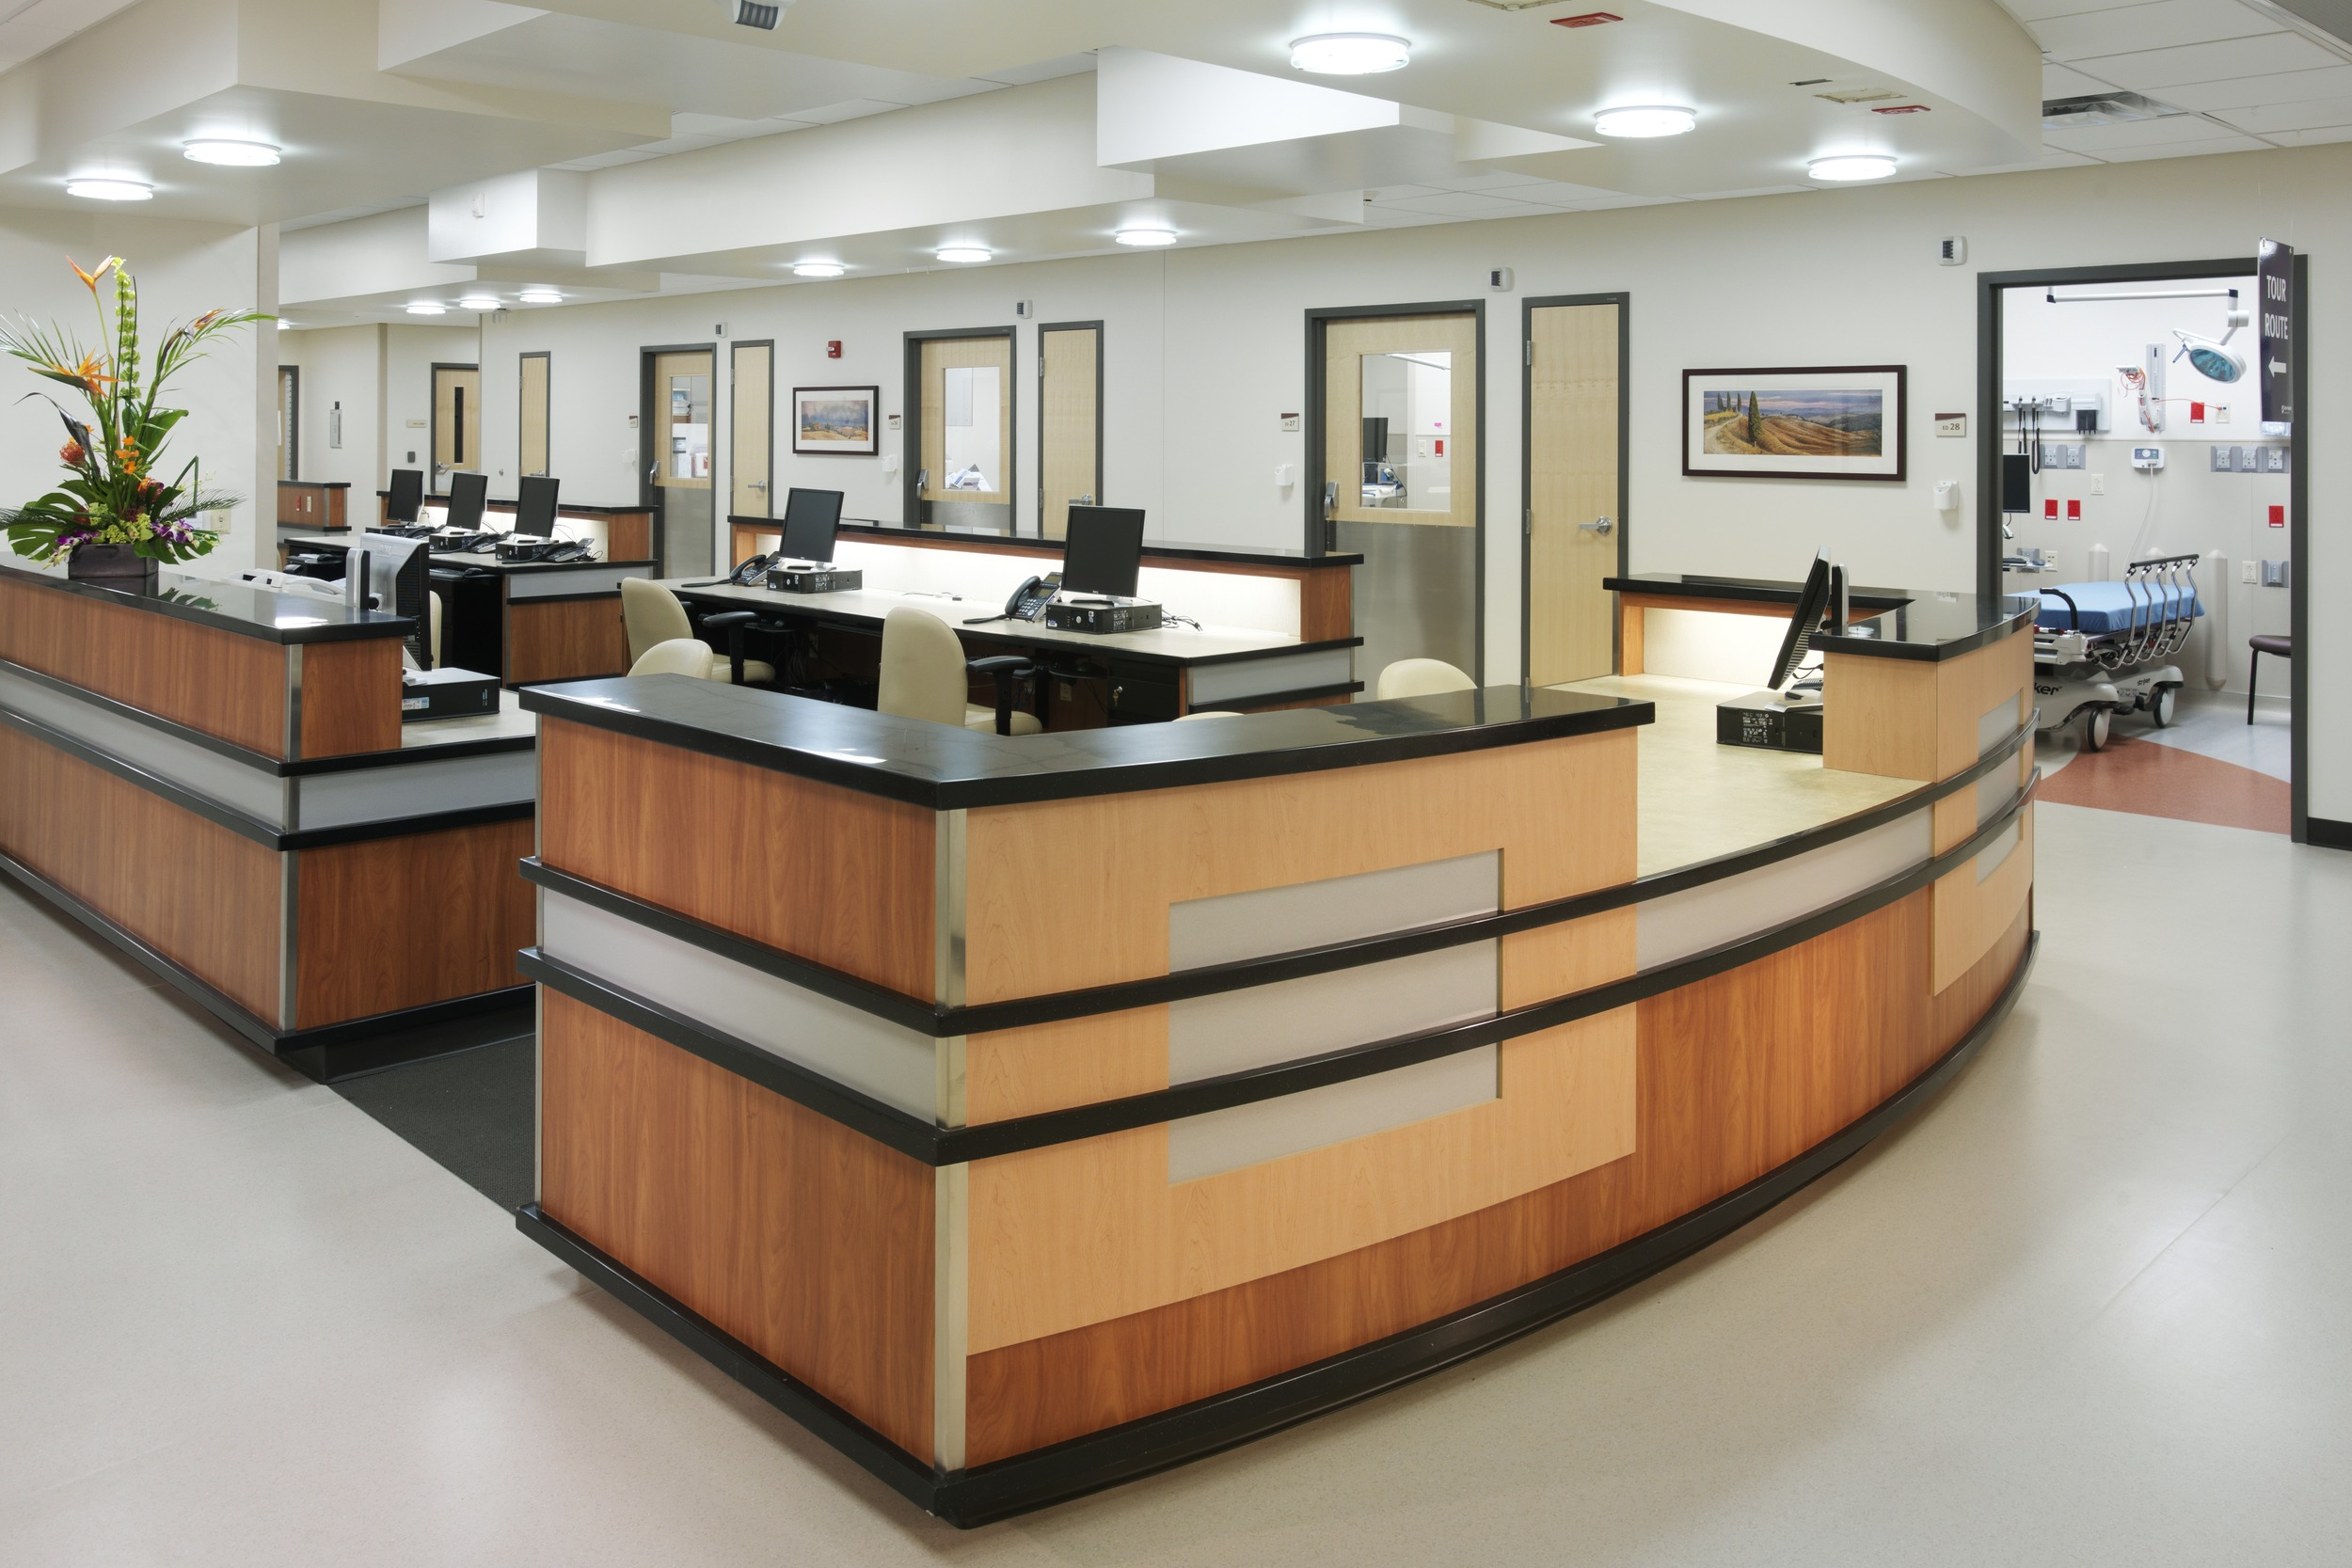 Patient Room Handedness: An Empirical Examination    Funds:  Academy of Architecture for Health Foundation (AAHF) Research Grant and Herman Miller Grant   Collaborators:  School of Nursing, University of Texas, Arlington, TX   Location:  Smart HospitalTM, University of Texas, Arlington, TX